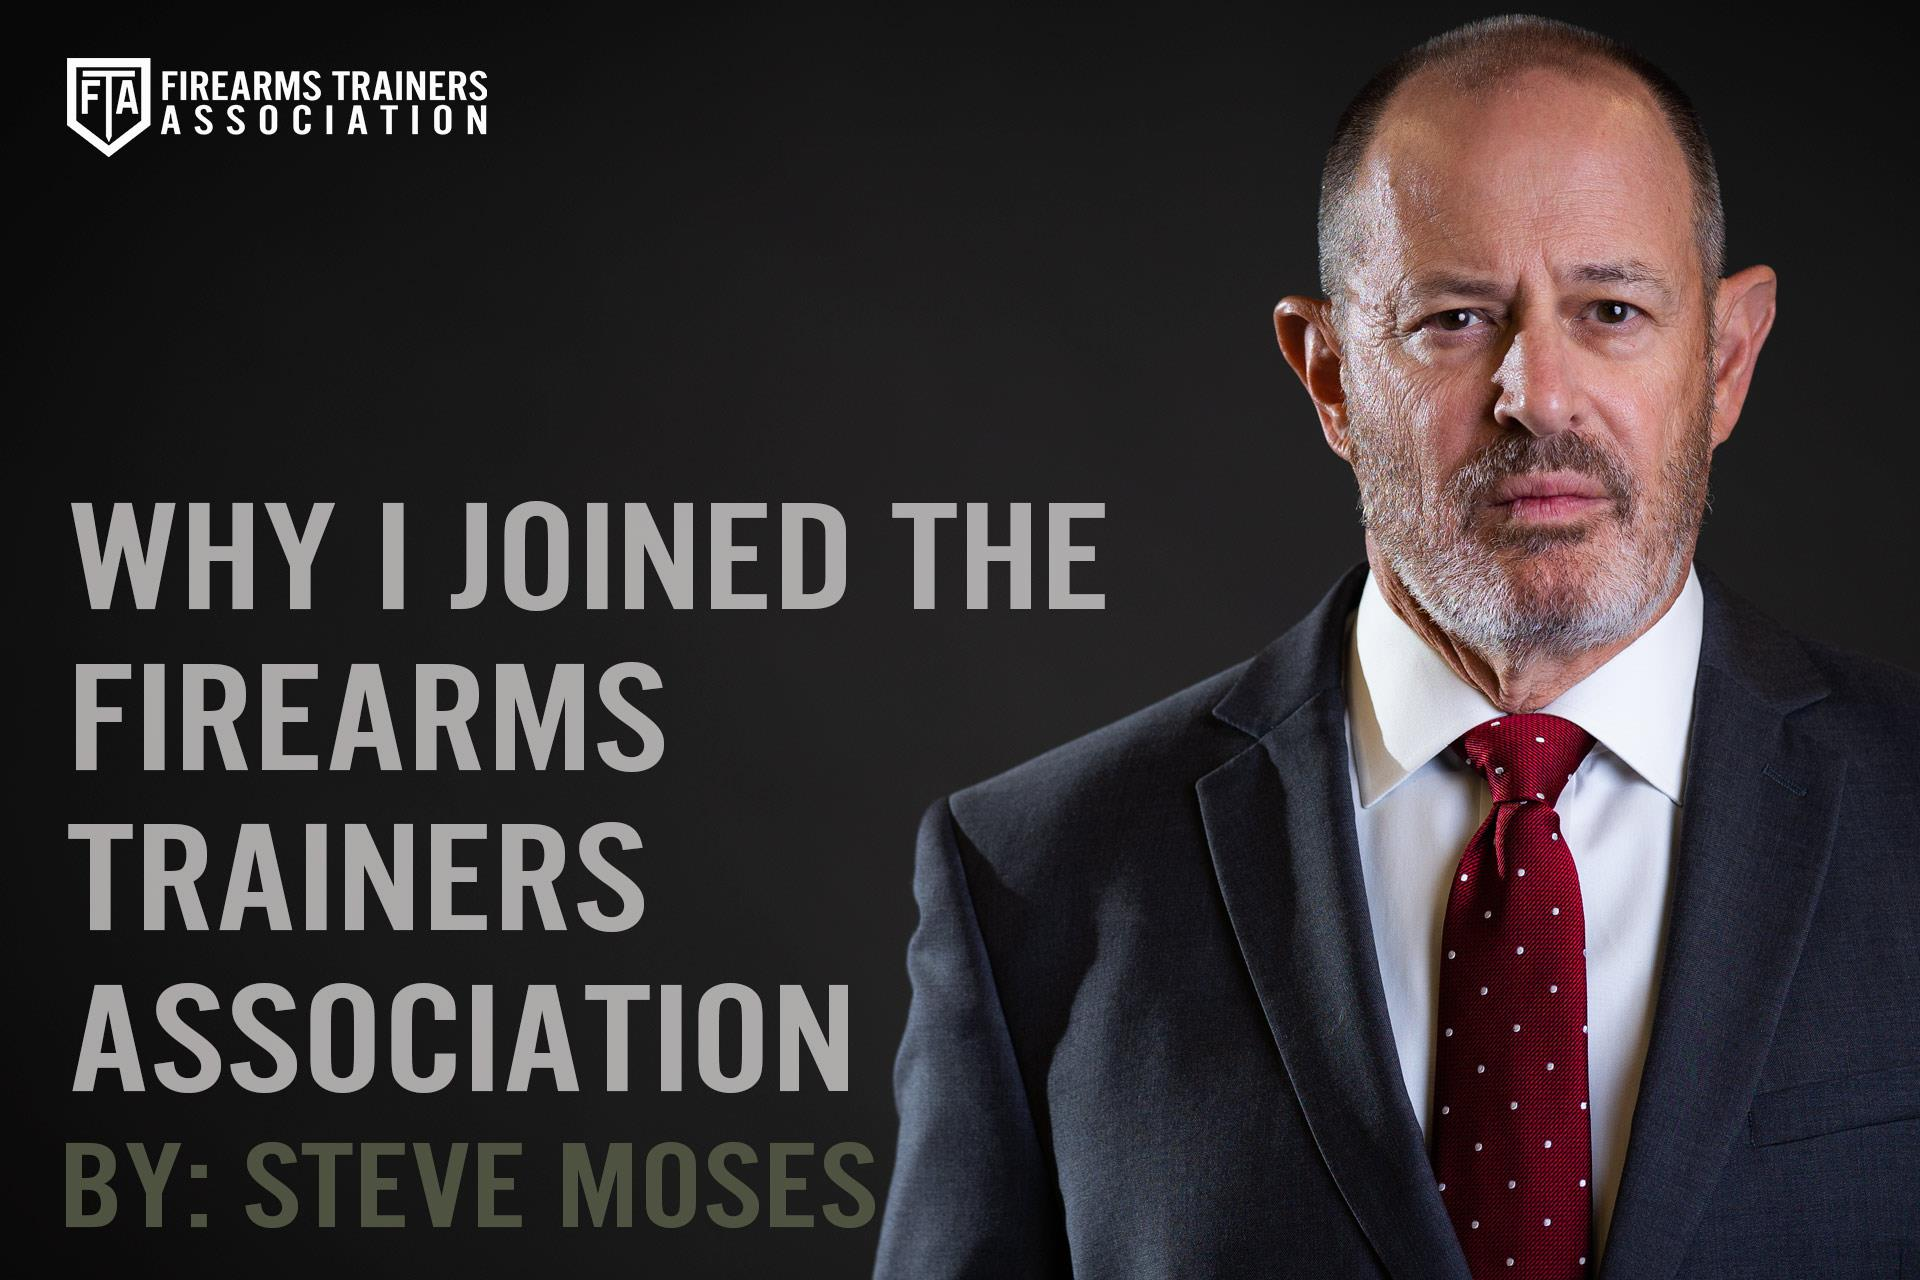 WHY I JOINED THE FIREARMS TRAINERS ASSOCIATION